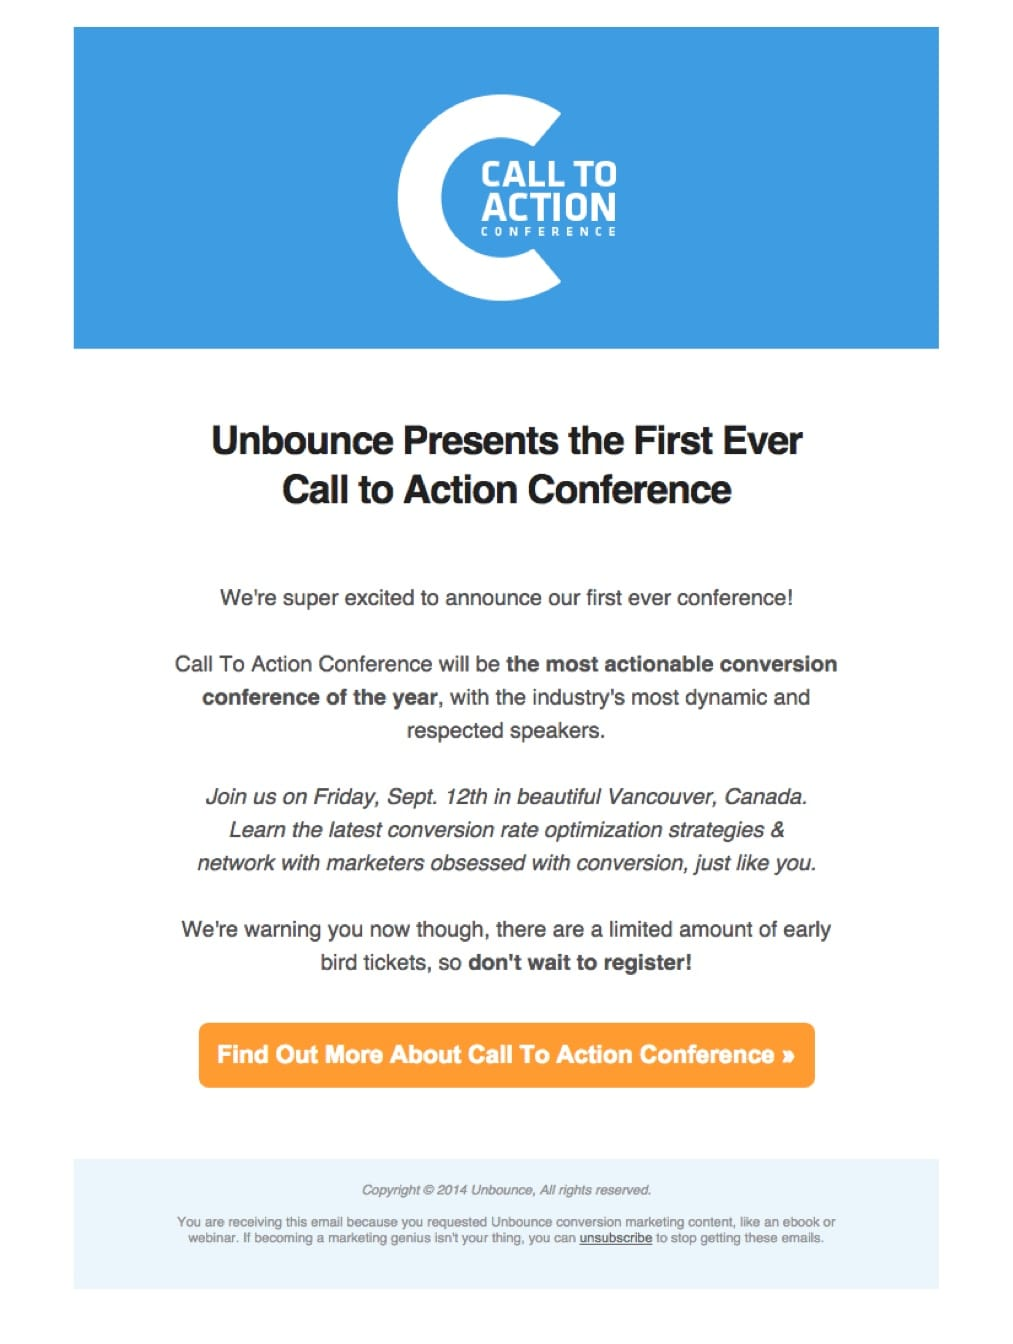 promotional email example unbounce (event announcement)